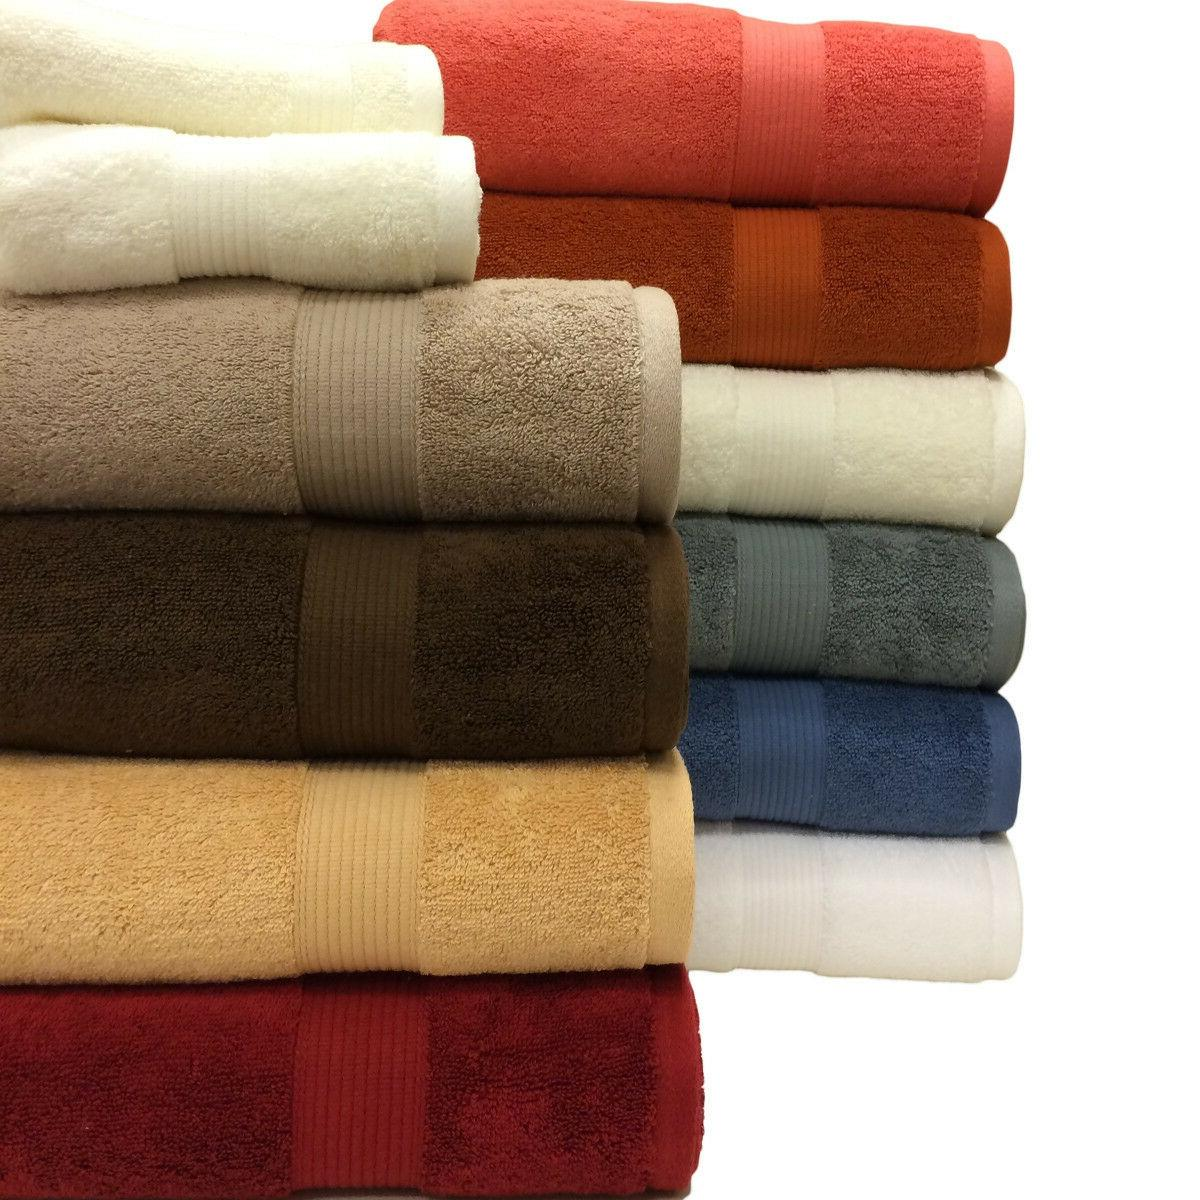 "100% Cotton Soft Solid 6PC Plush Towel Set, ""Bath Towel, Han"